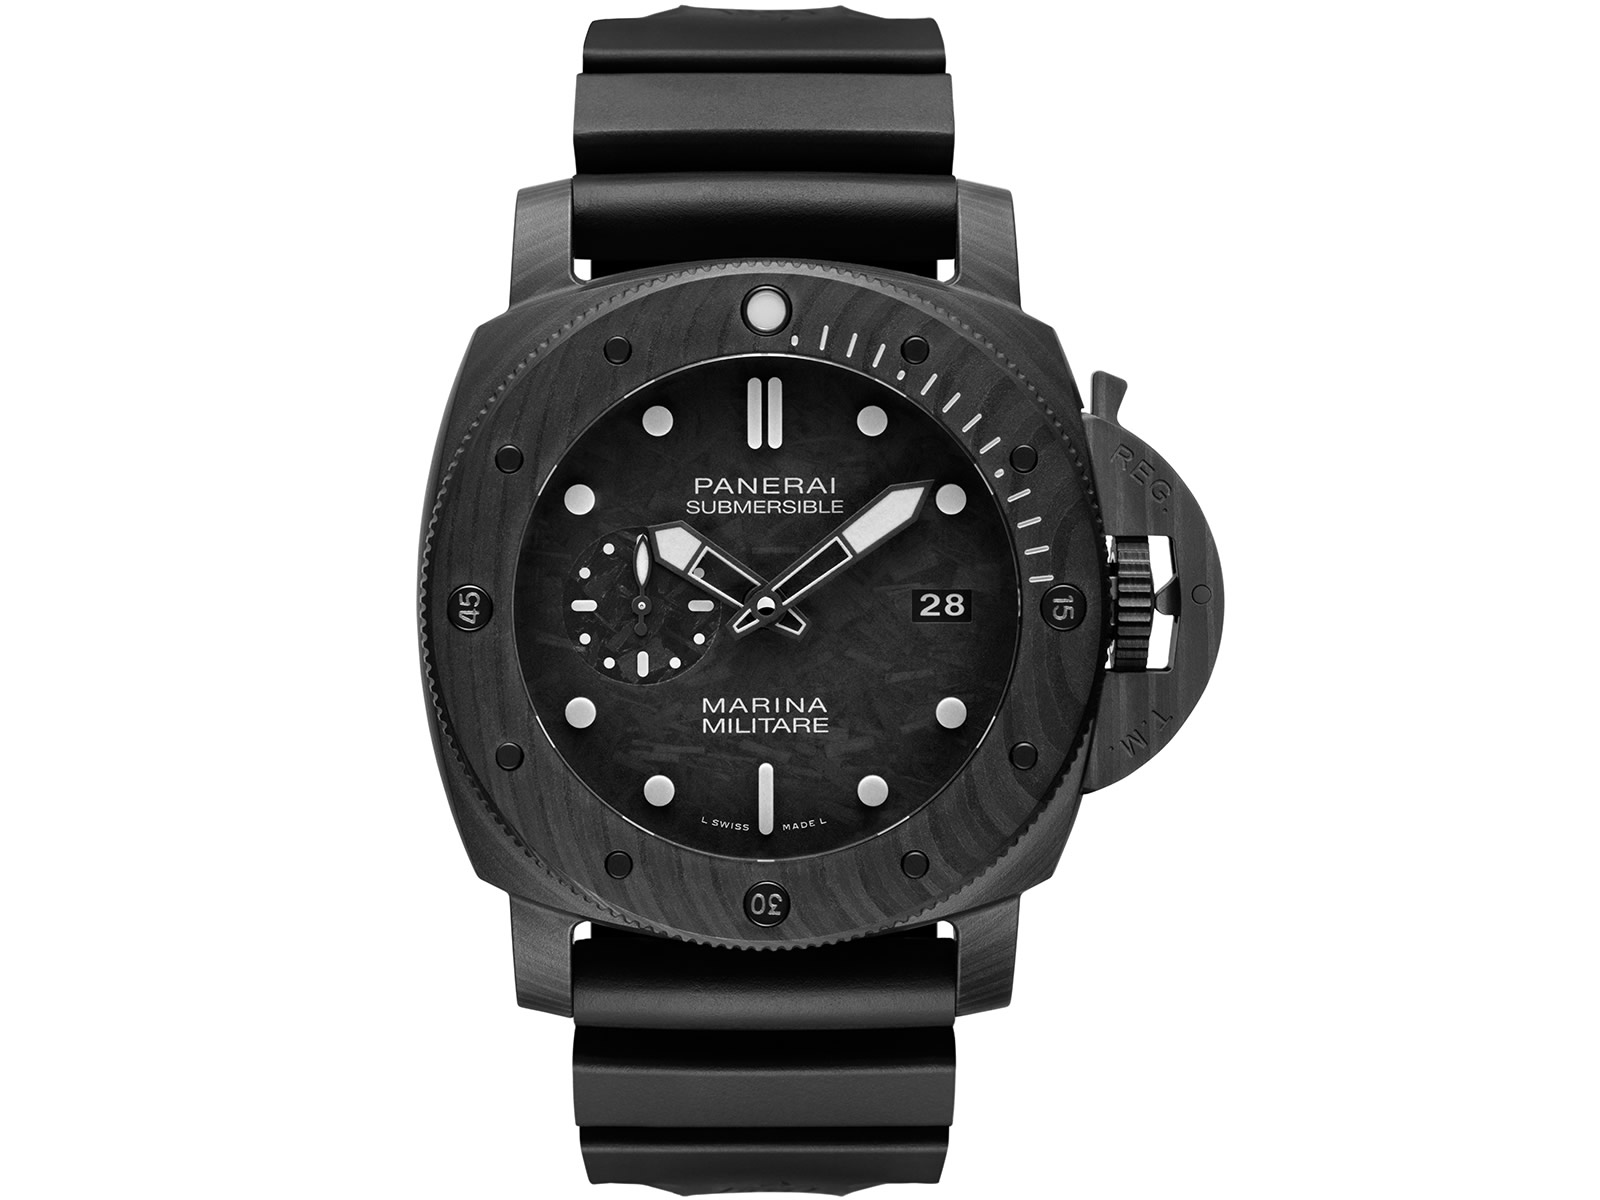 pam00979-officine-panerai-submersible-marina-militare-carbotech-5-.jpg